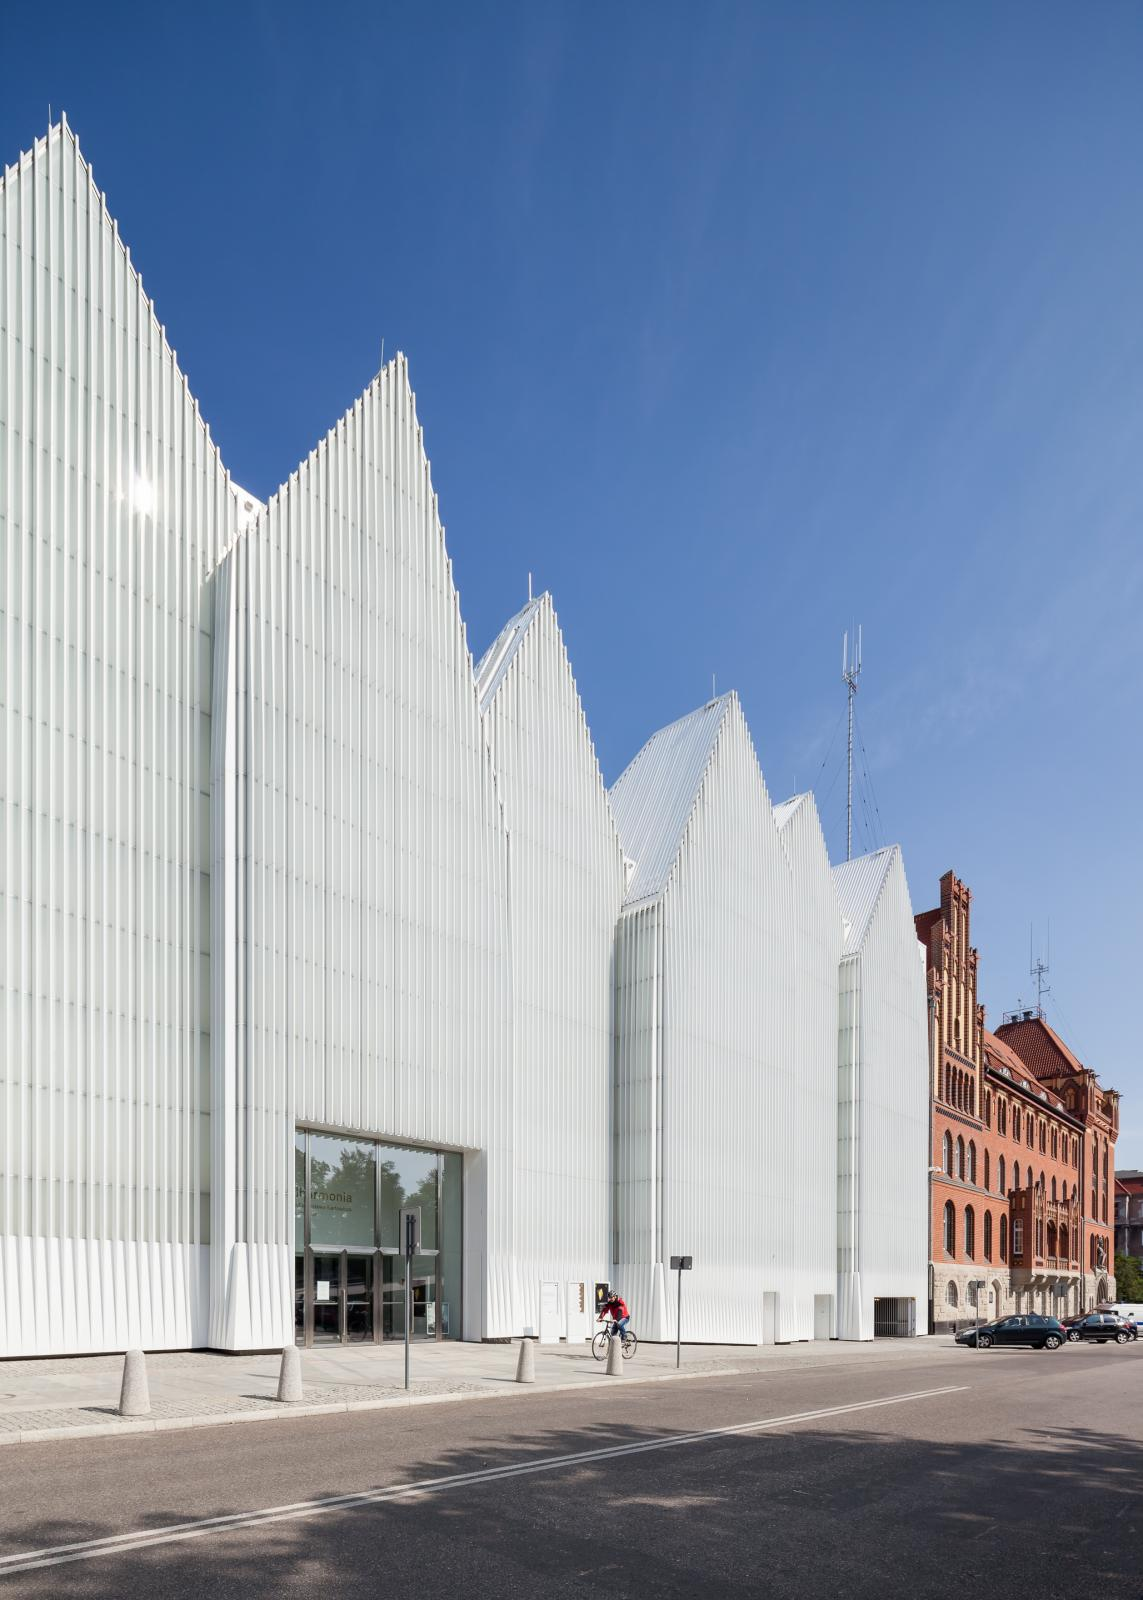 Photograph of Szczecin Philharmonic Hall, designed by Estudio Barozzi Veiga and located in Szczecin, Poland